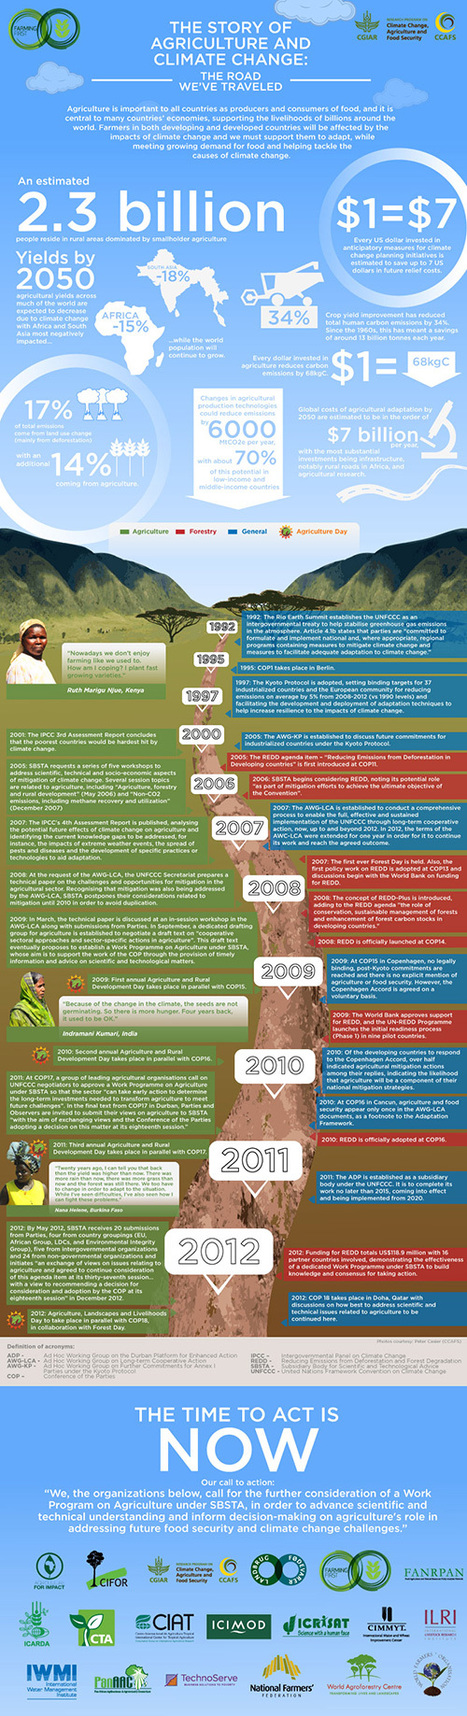 Infographic: Charting the History of Agriculture & Climate Change | AP HUMAN GEOGRAPHY DIGITAL  TEXTBOOK: MIKE BUSARELLO | Scoop.it